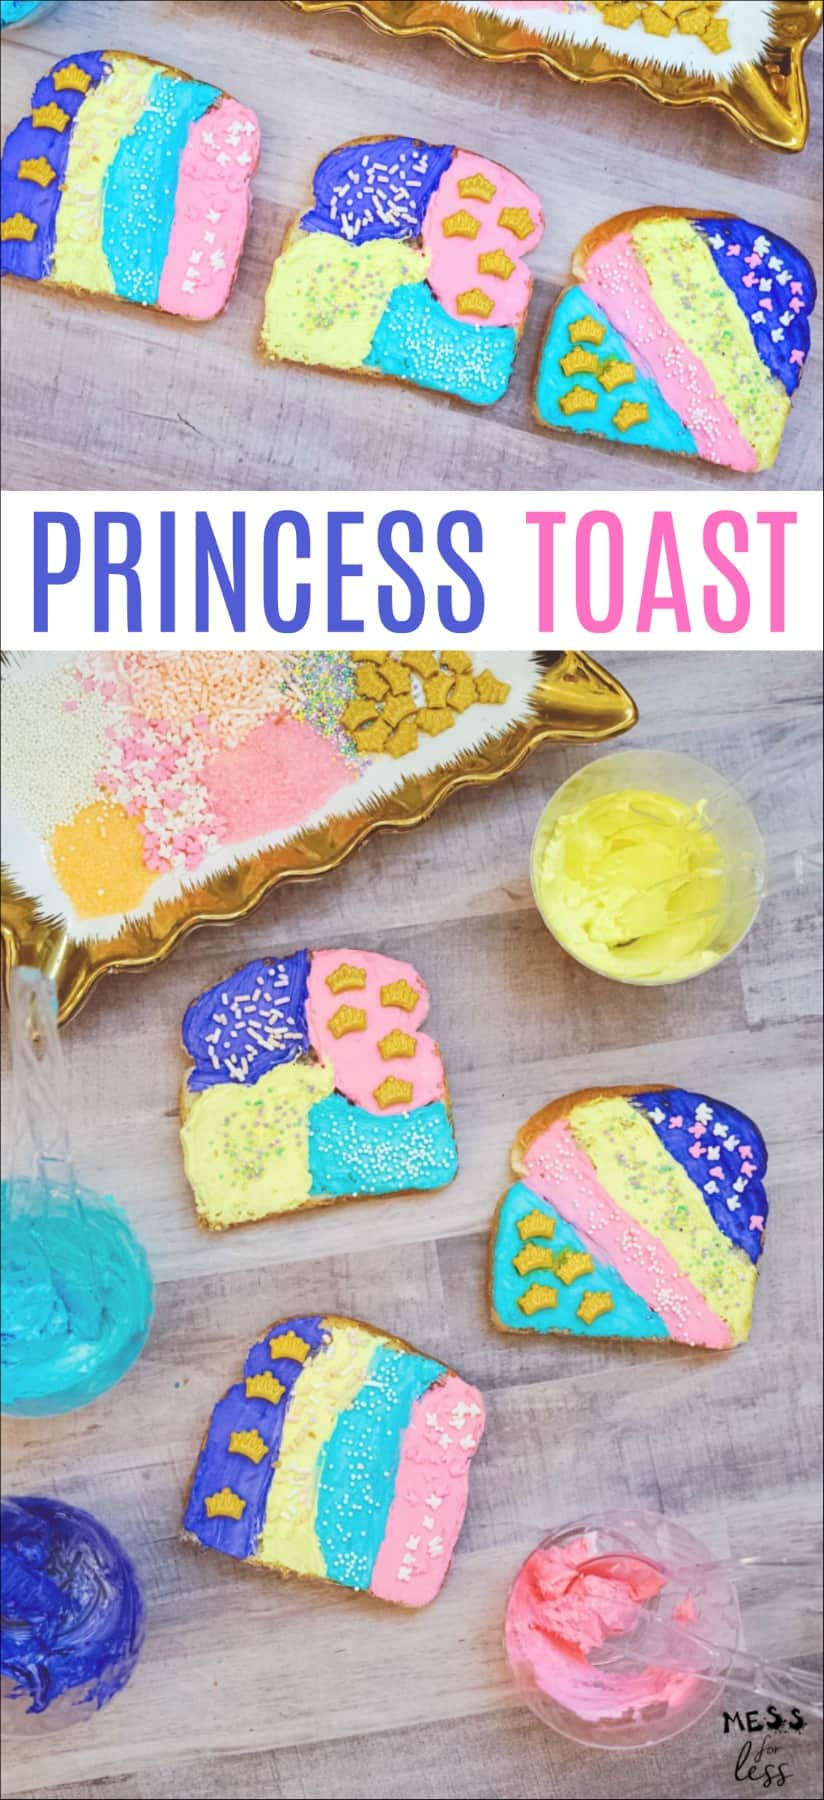 This Princess Toast would be wonderful to serve at a play date, and if you are having a princess party, this would perfect for the guests to make and eat! #princesstoast #kidssnack #cookingwithkids